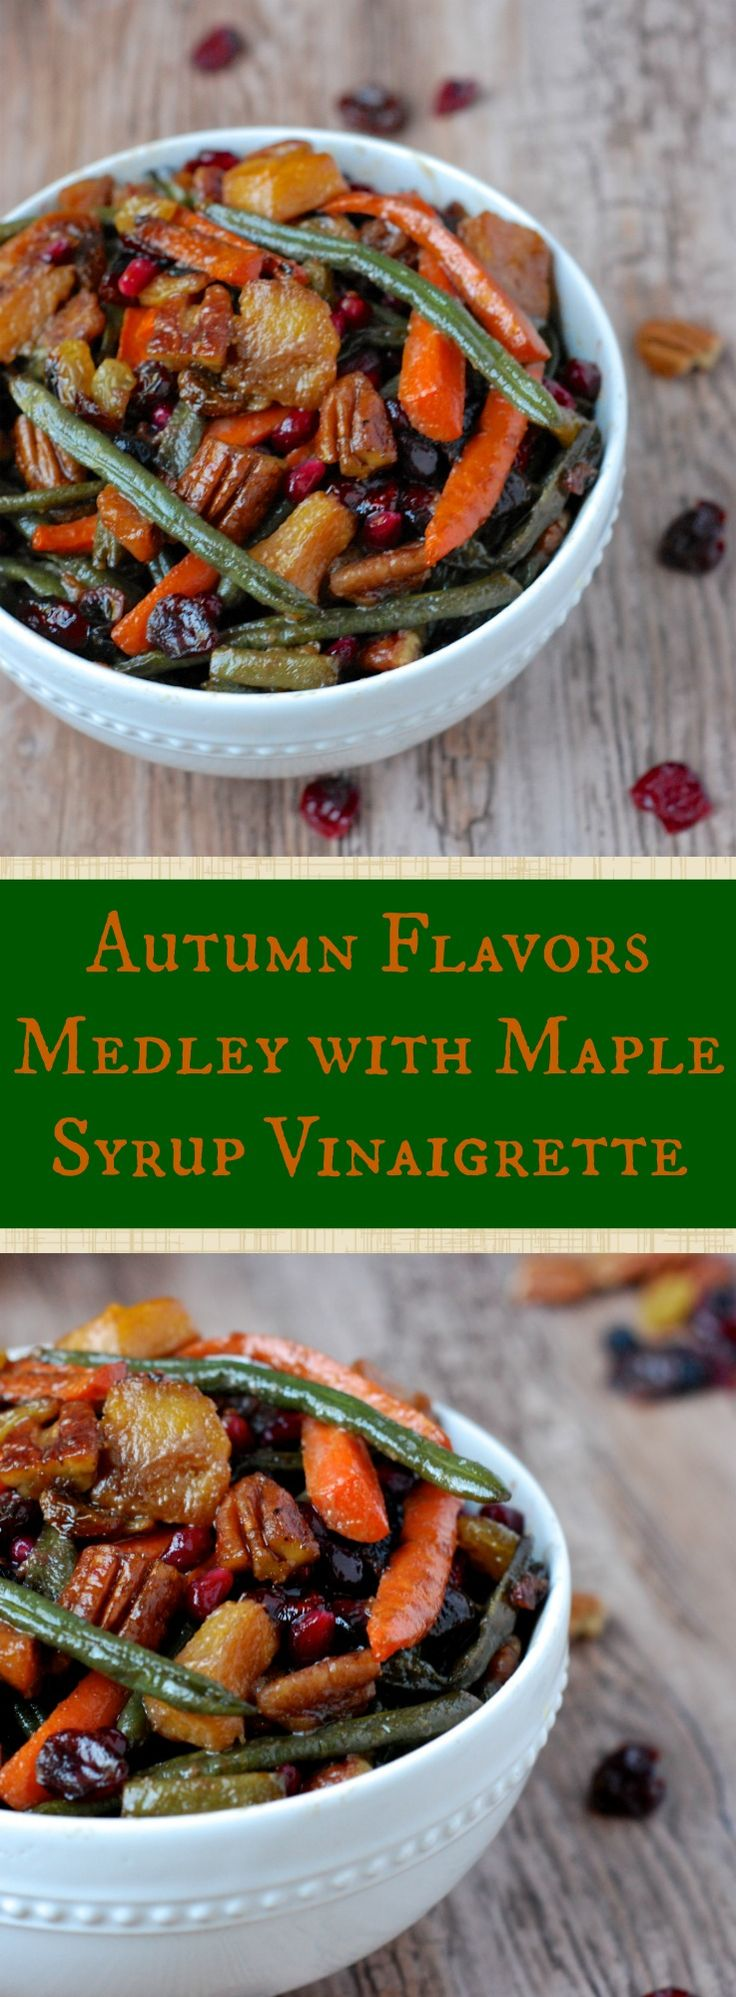 I absolutely love all the flavors autumn has to offer! Try out this amazing medley of flavors just in time for the cool weather.